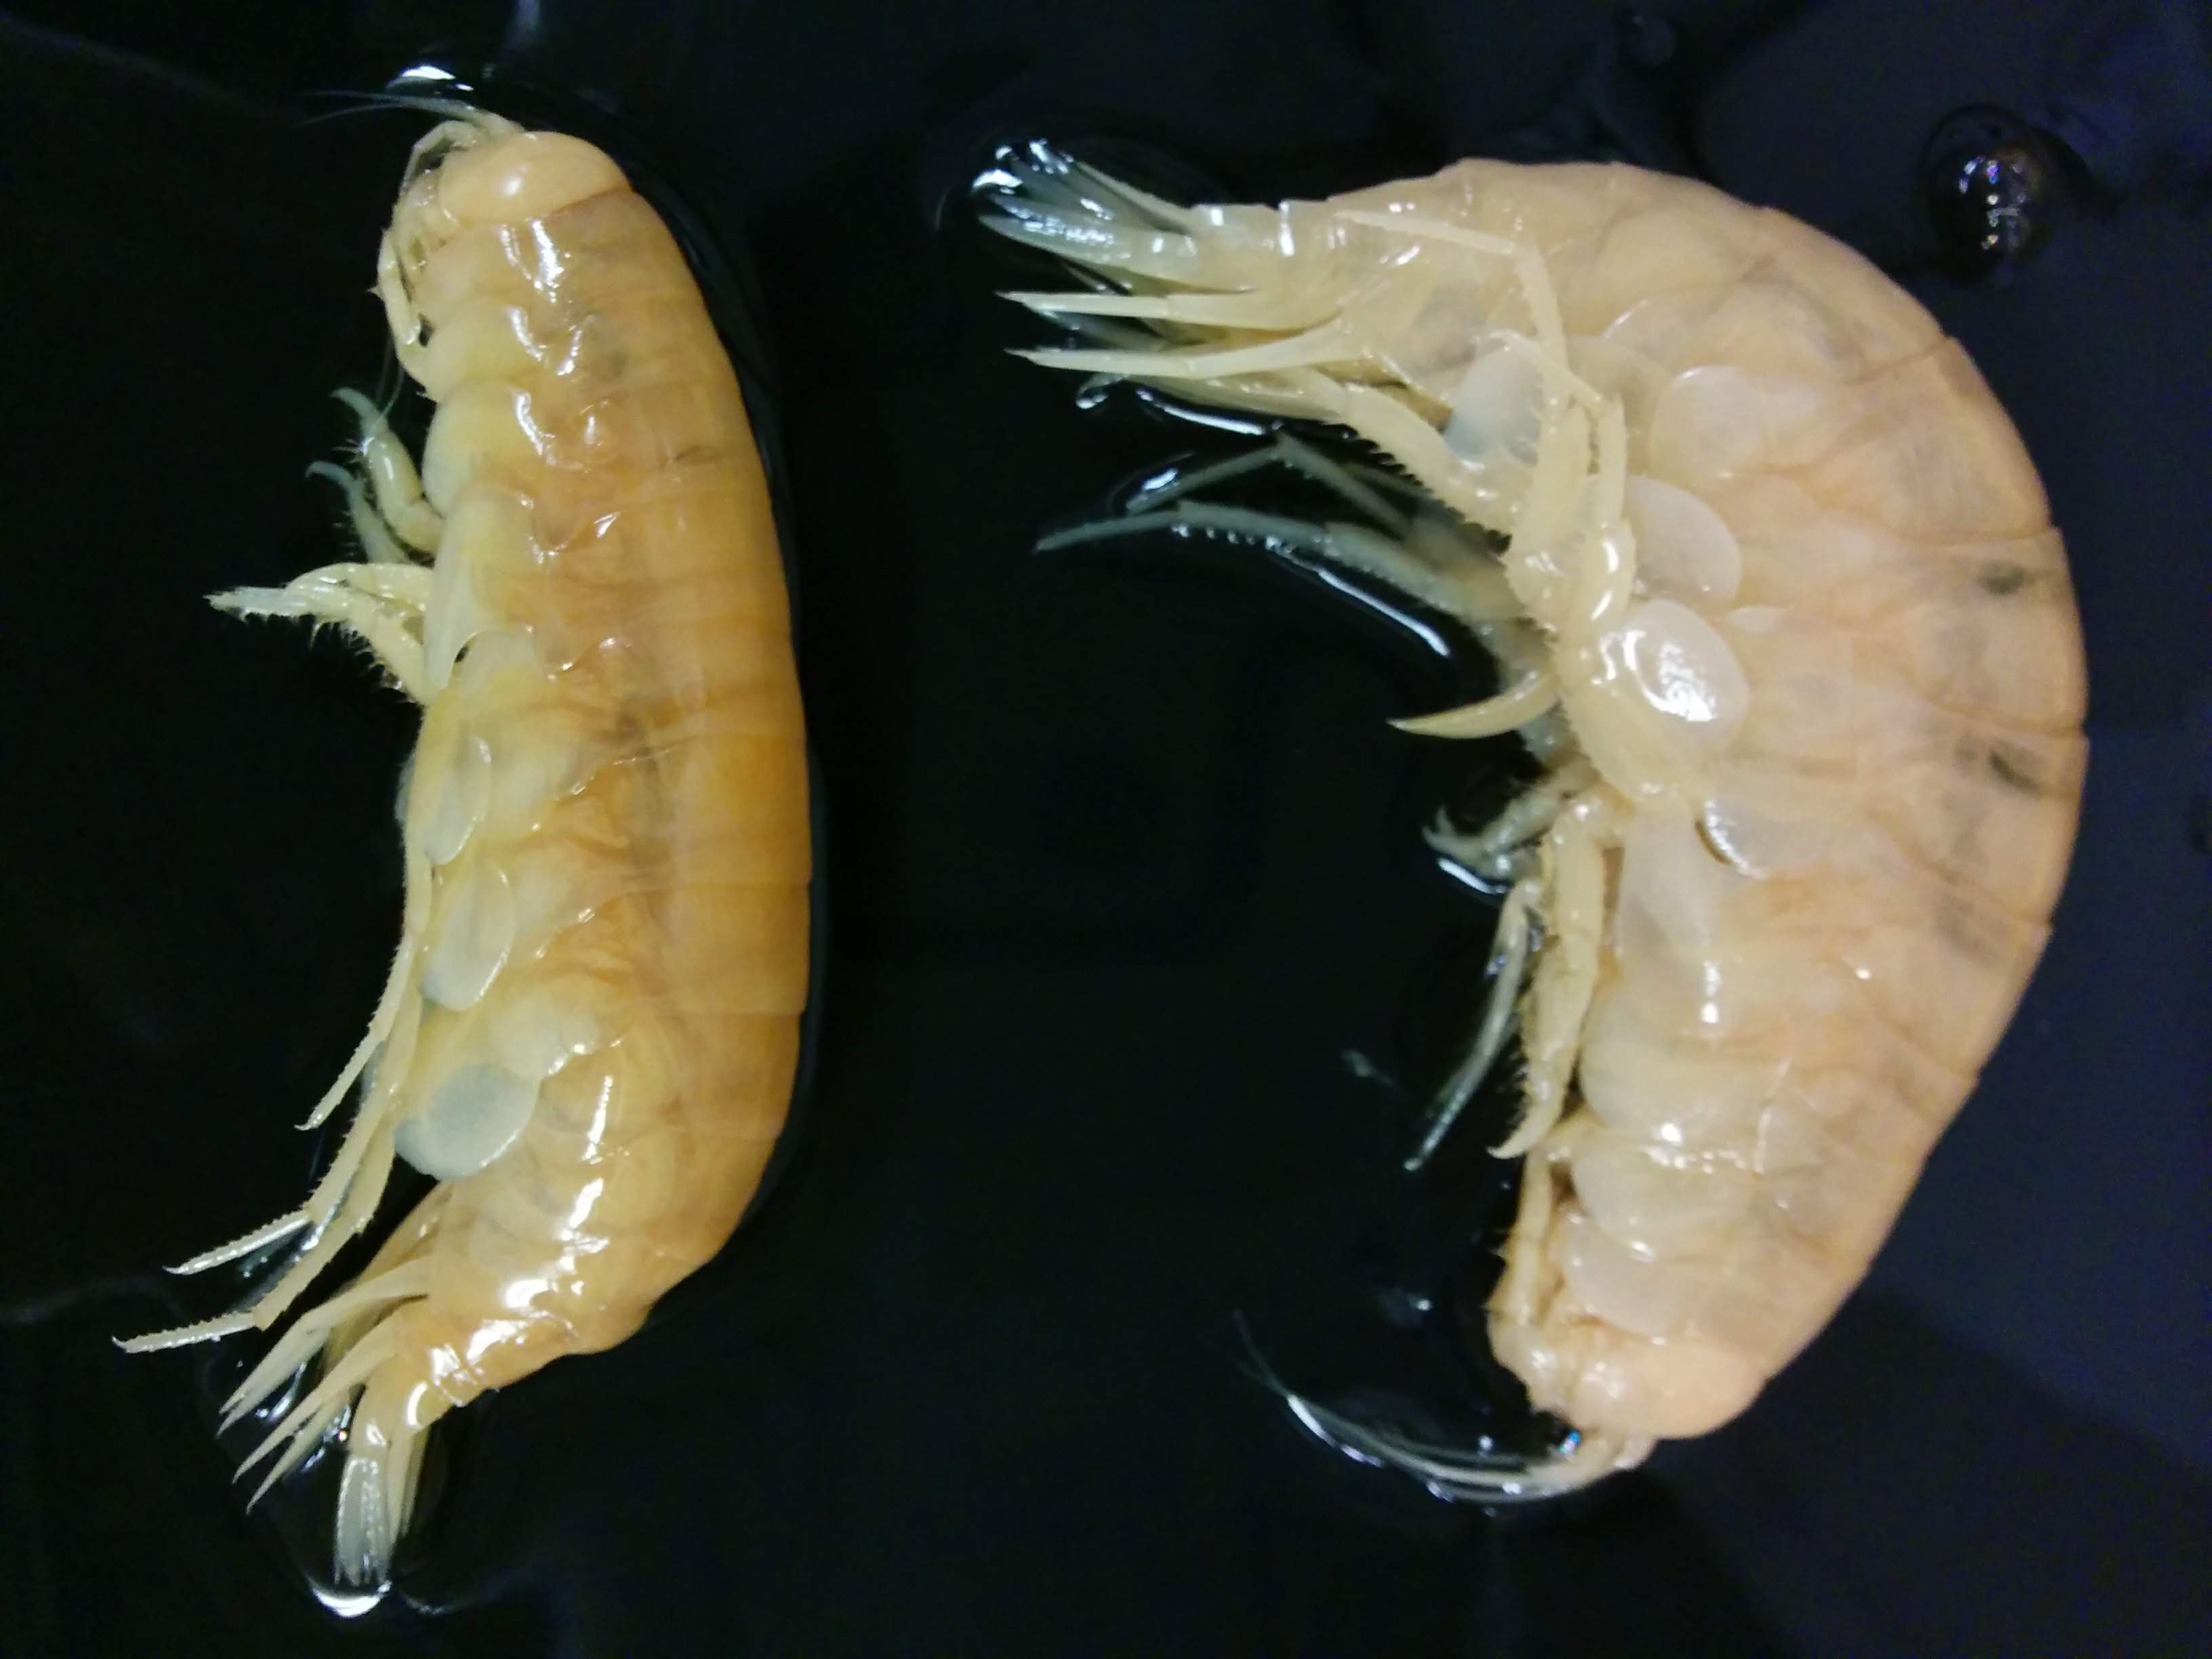 These shrimp-like crustaceans were collected 8,367 m deep in the New Britain Trench off Papua New Guinea. Giant amphipods (Alicella gigantea) are important scavengers in deep-sea ecosystems, and these specimens were caught using a trap baited with fish. Image: Charlotte Seid/Scripps Institution of Oceanography University of California San Diego.